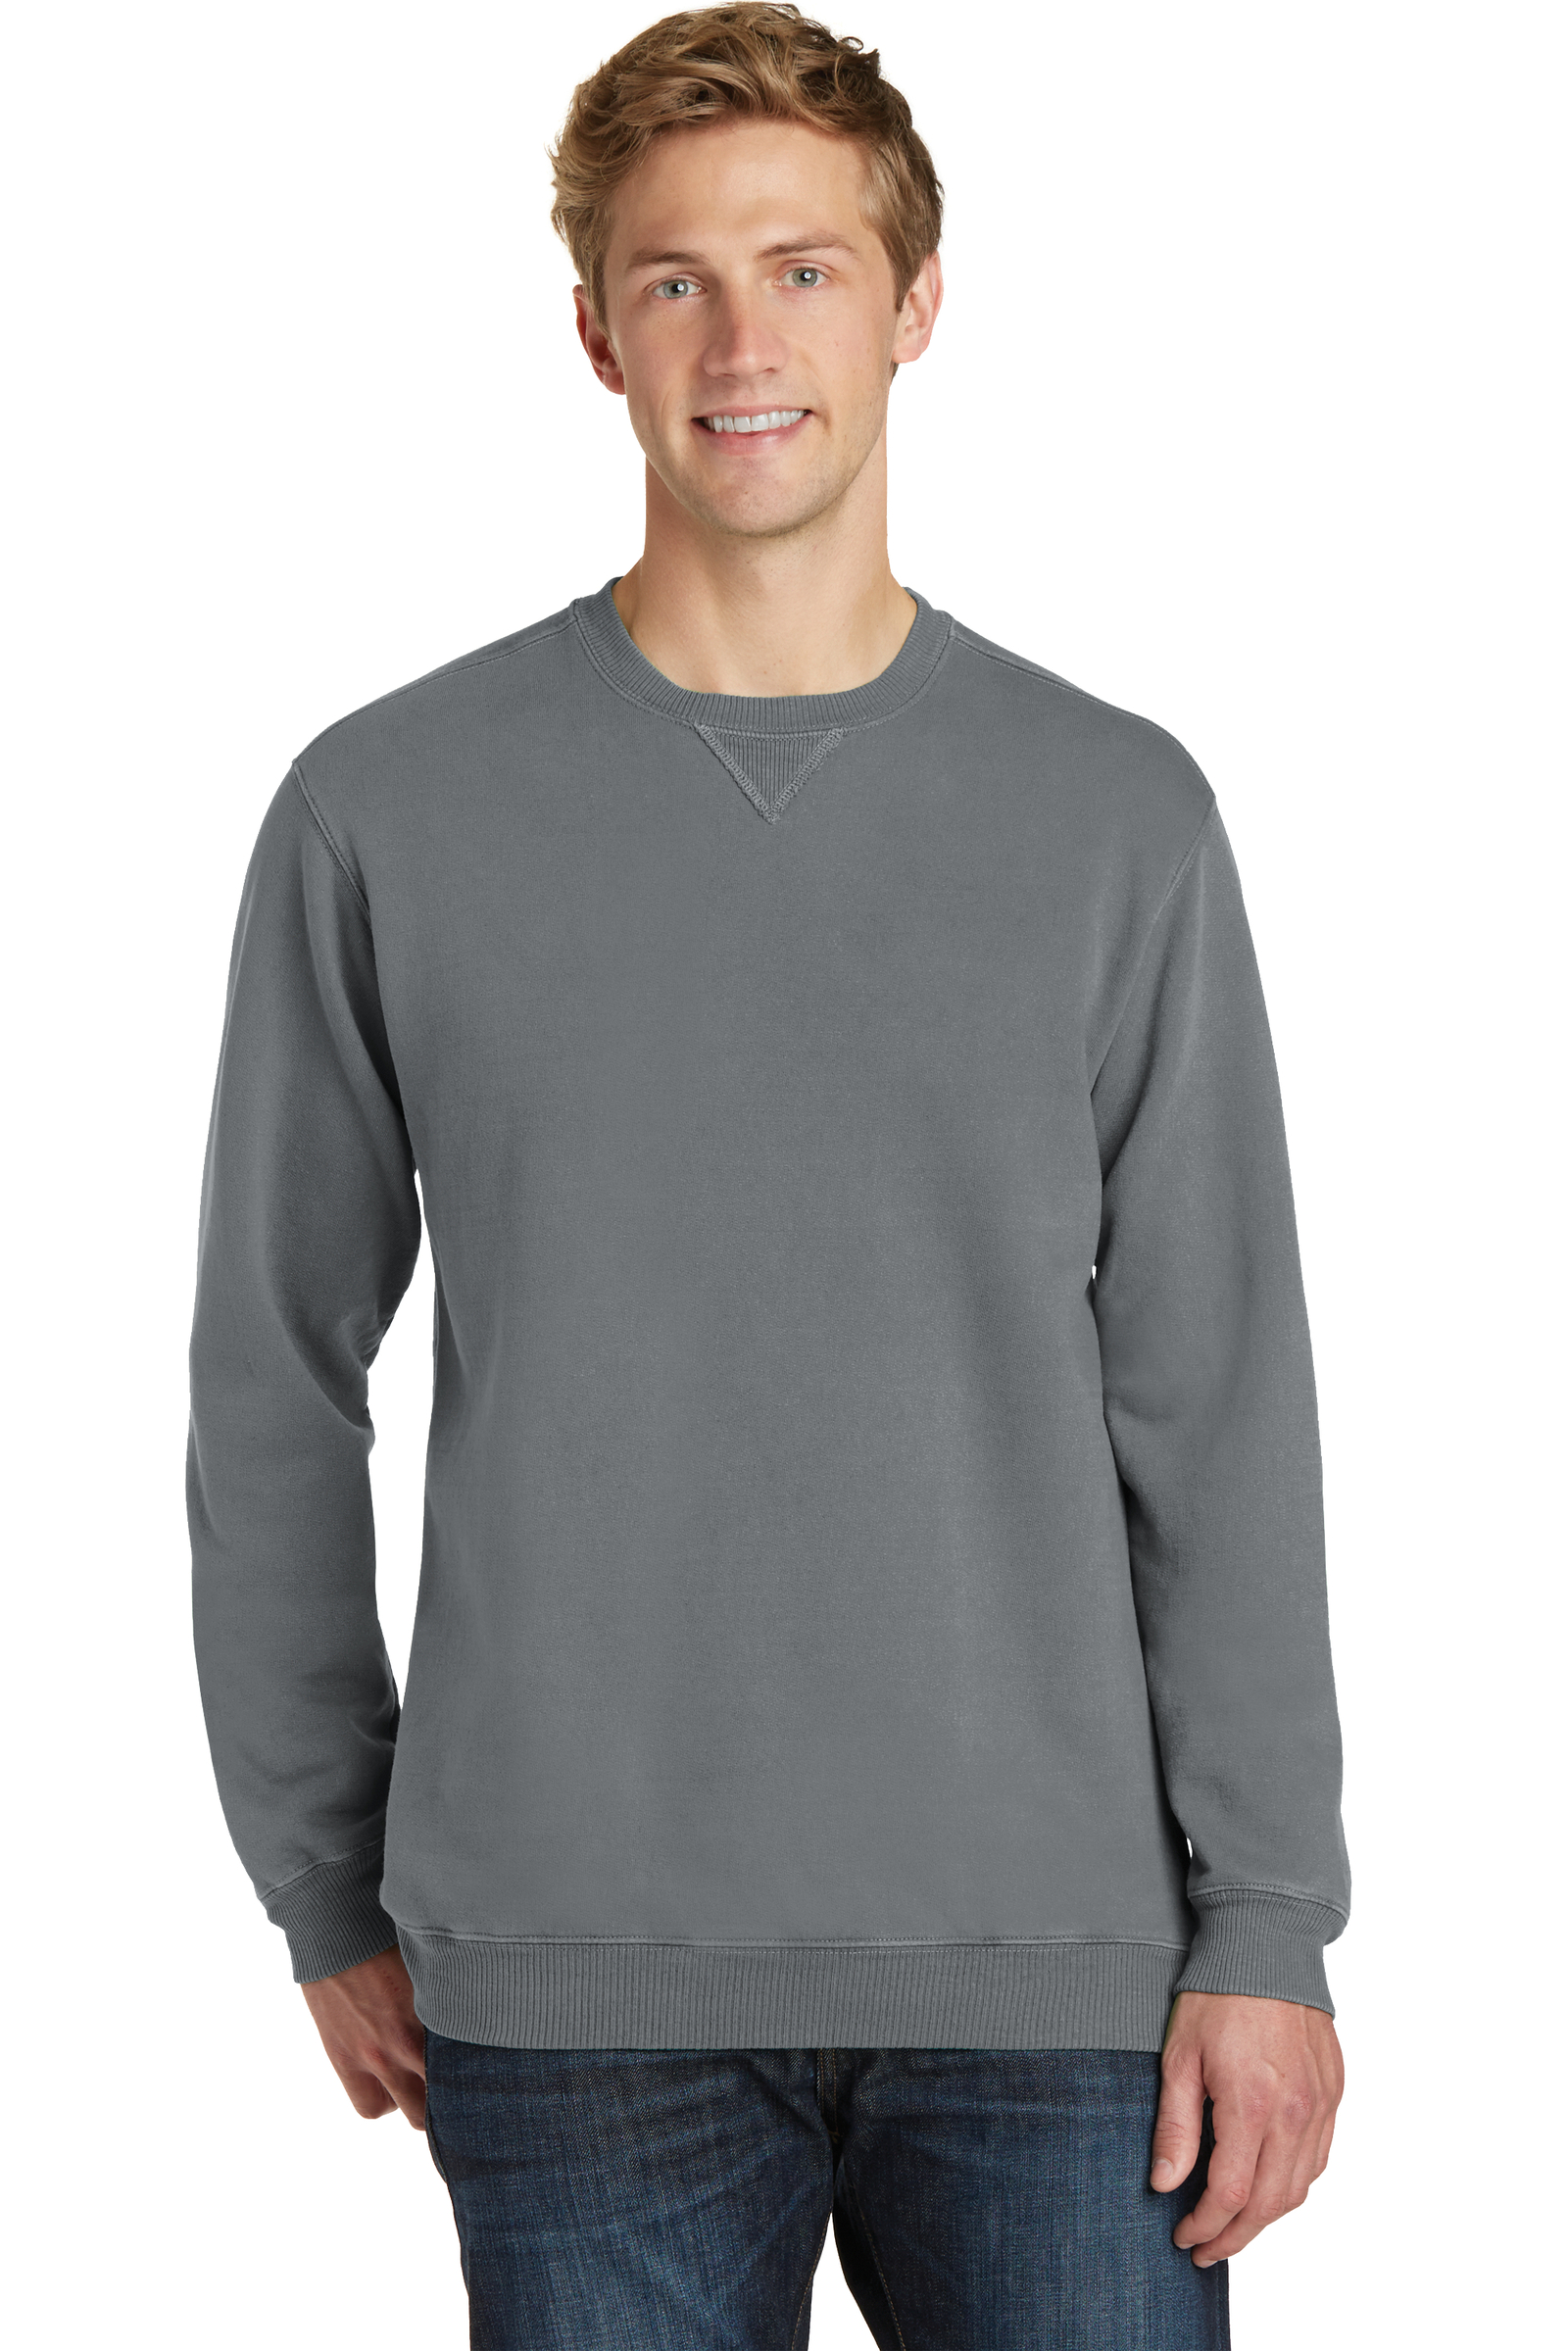 Port & Company Embroidered Beach Wash Garment-Dye Sweatshirt